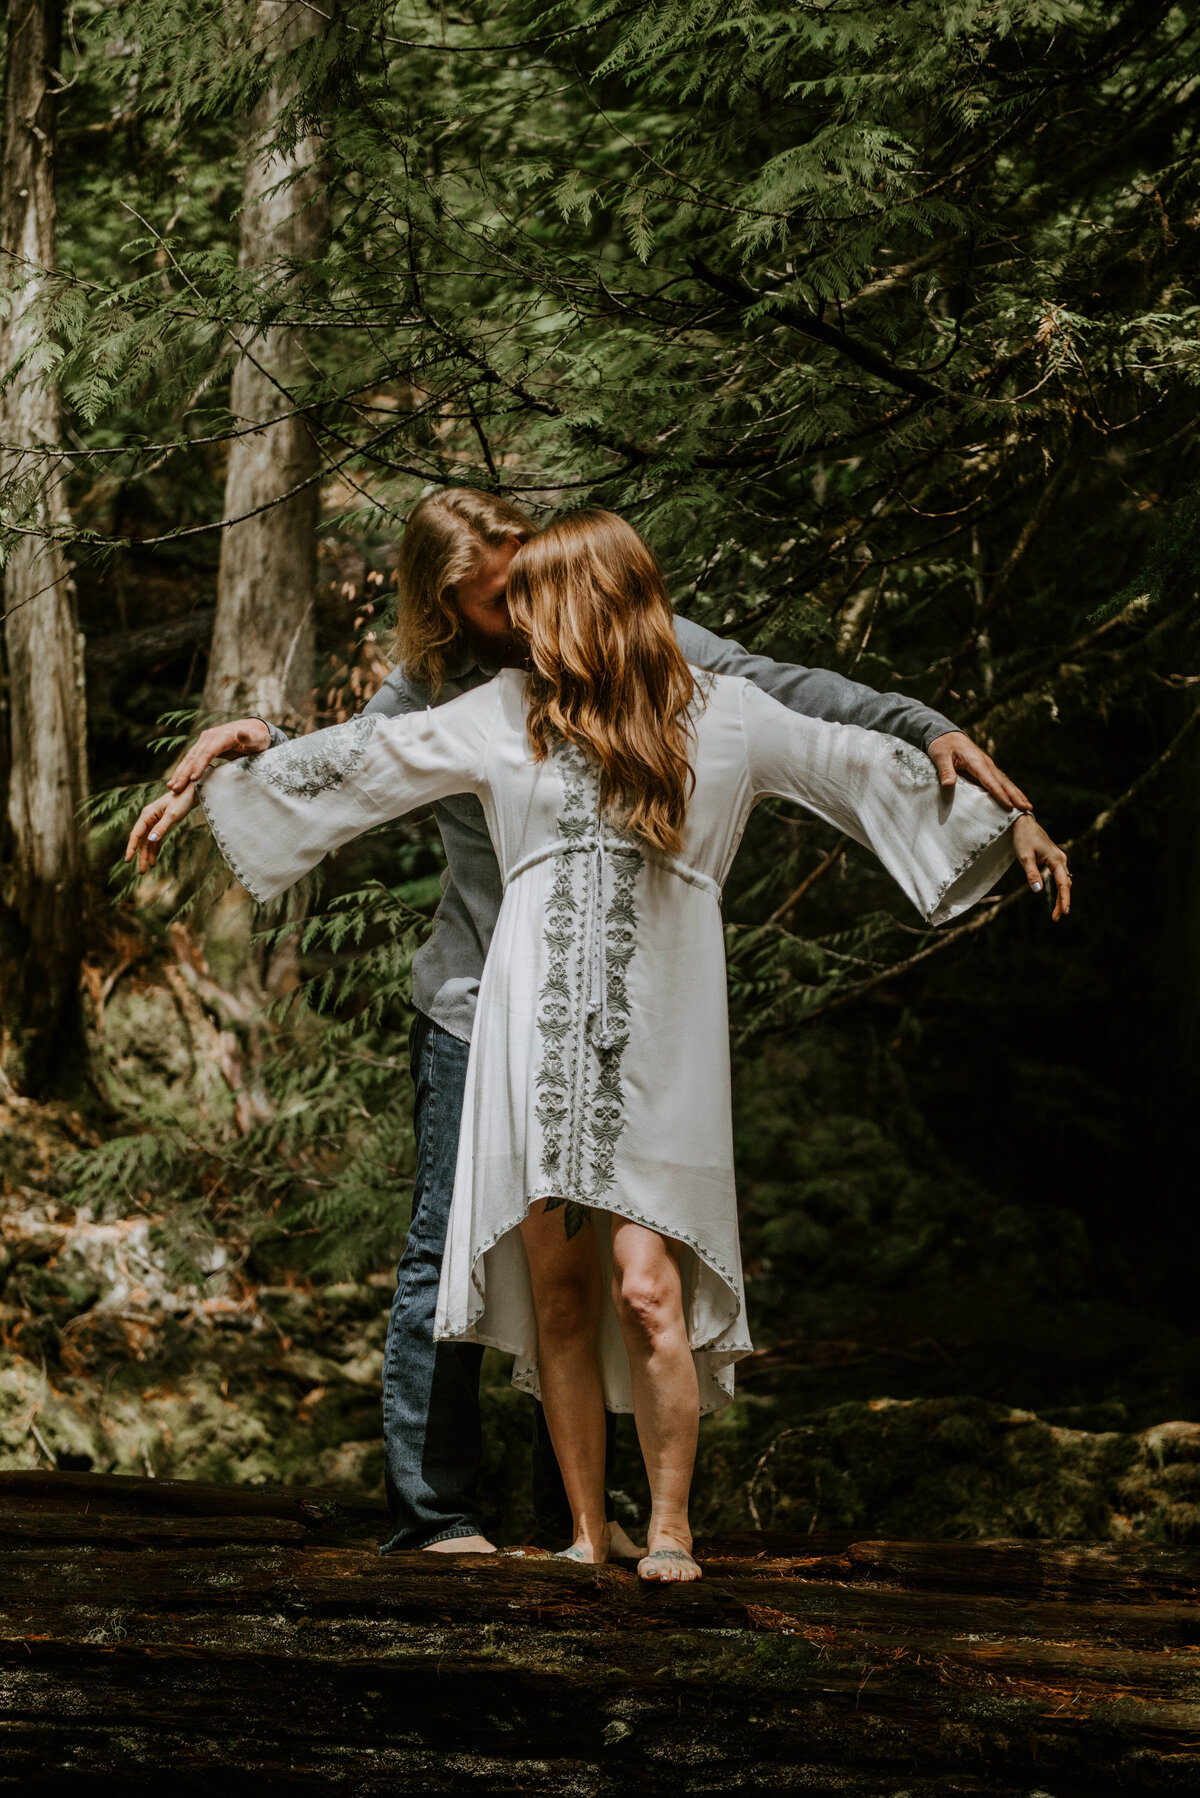 sahalie-falls-summer-oregon-photoshoot-adventure-photographer-bend-couple-forest-outfits-elopement-wedding7835